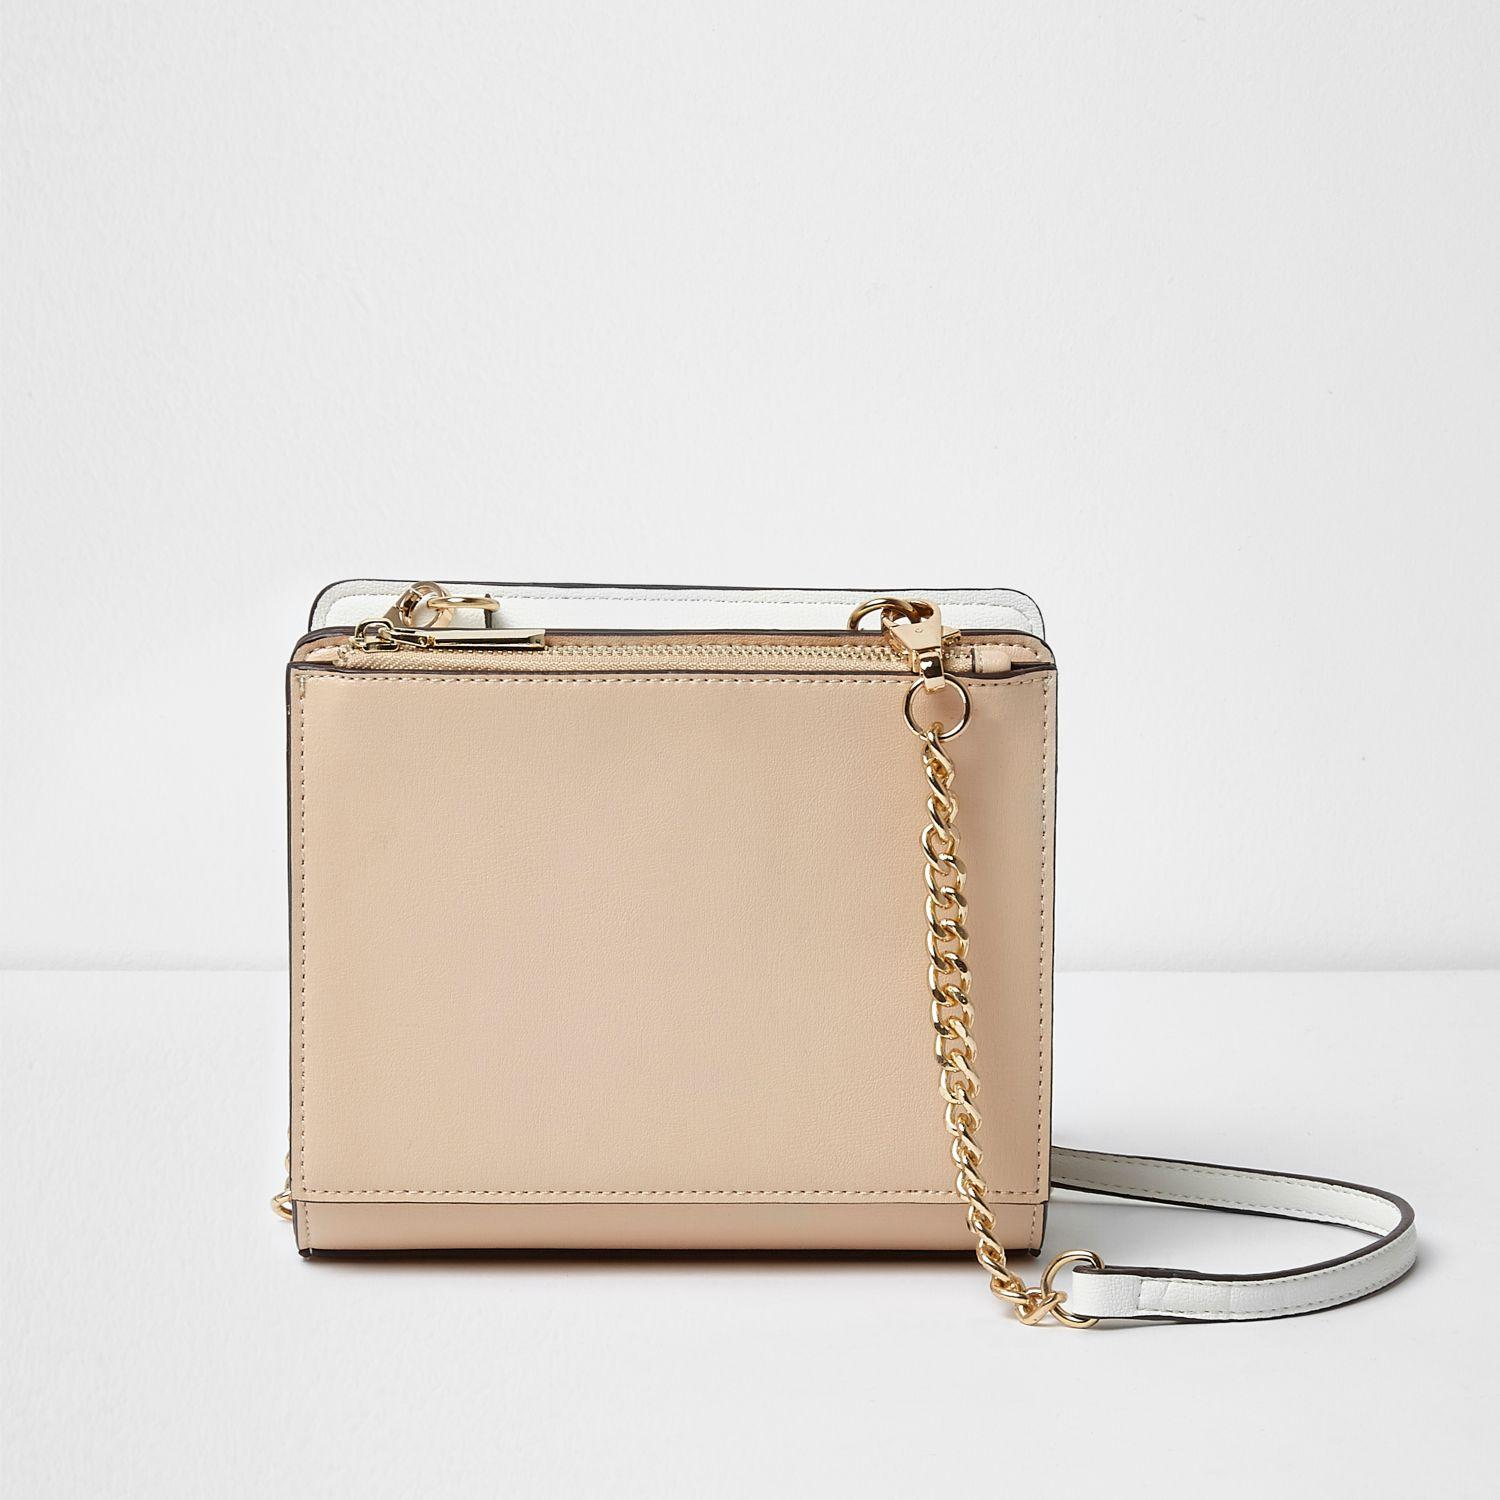 River Island Beige Front Pocket Chain Cross Body Bag in Cream (Natural)